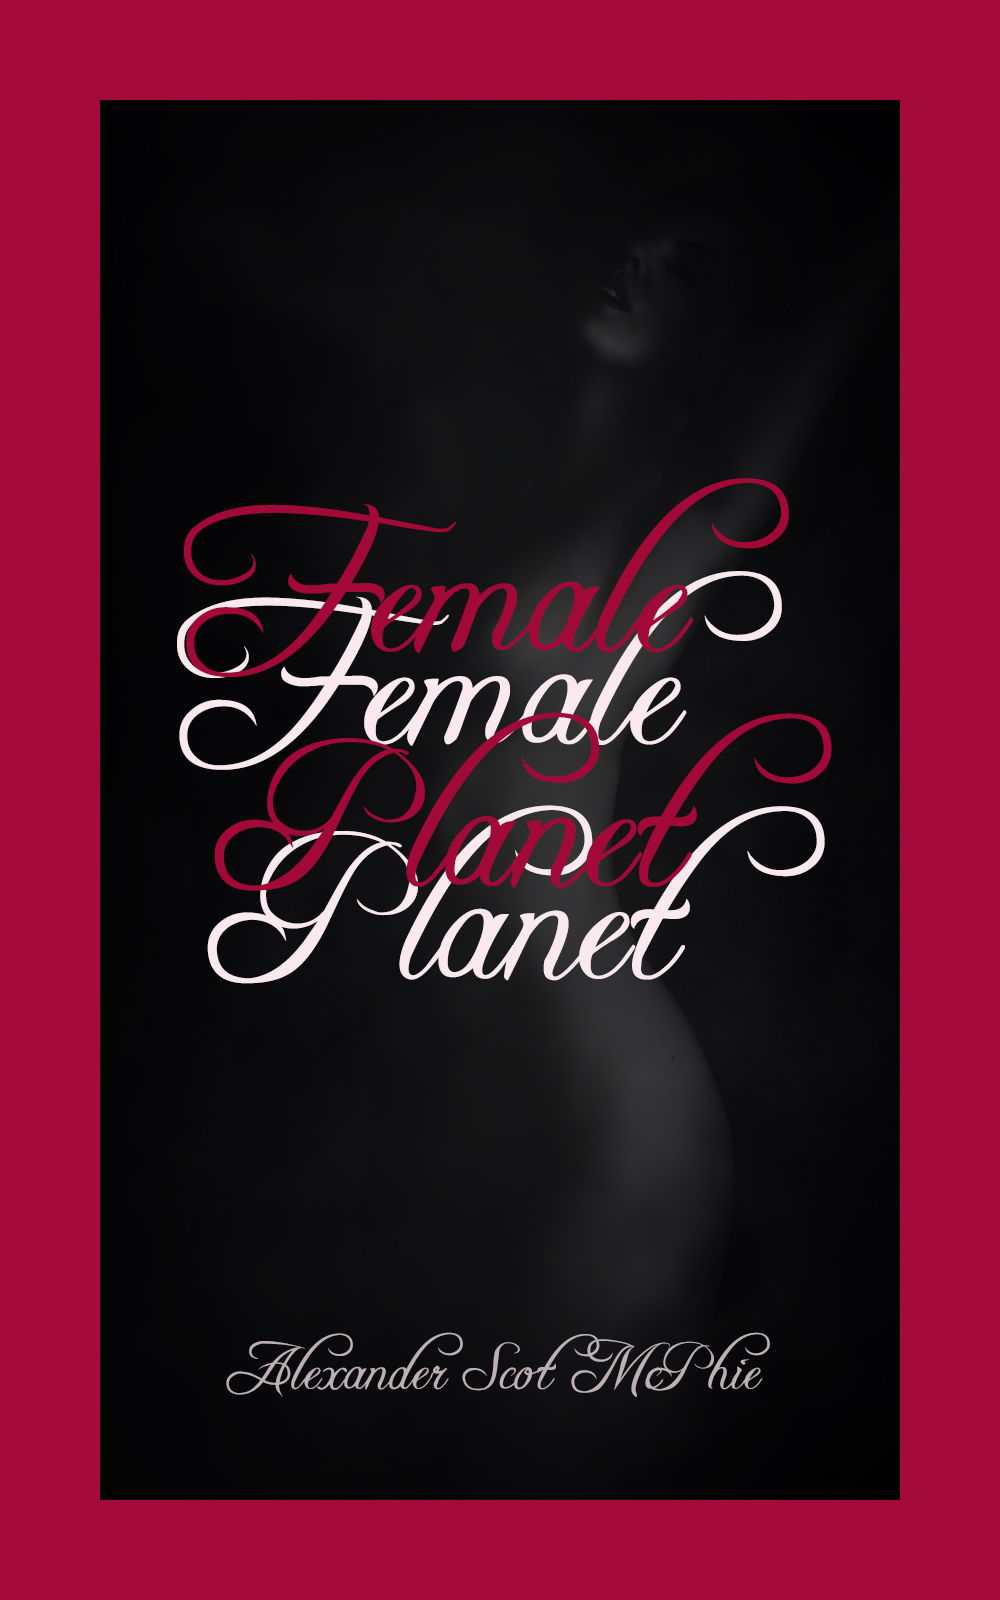 female planet cover